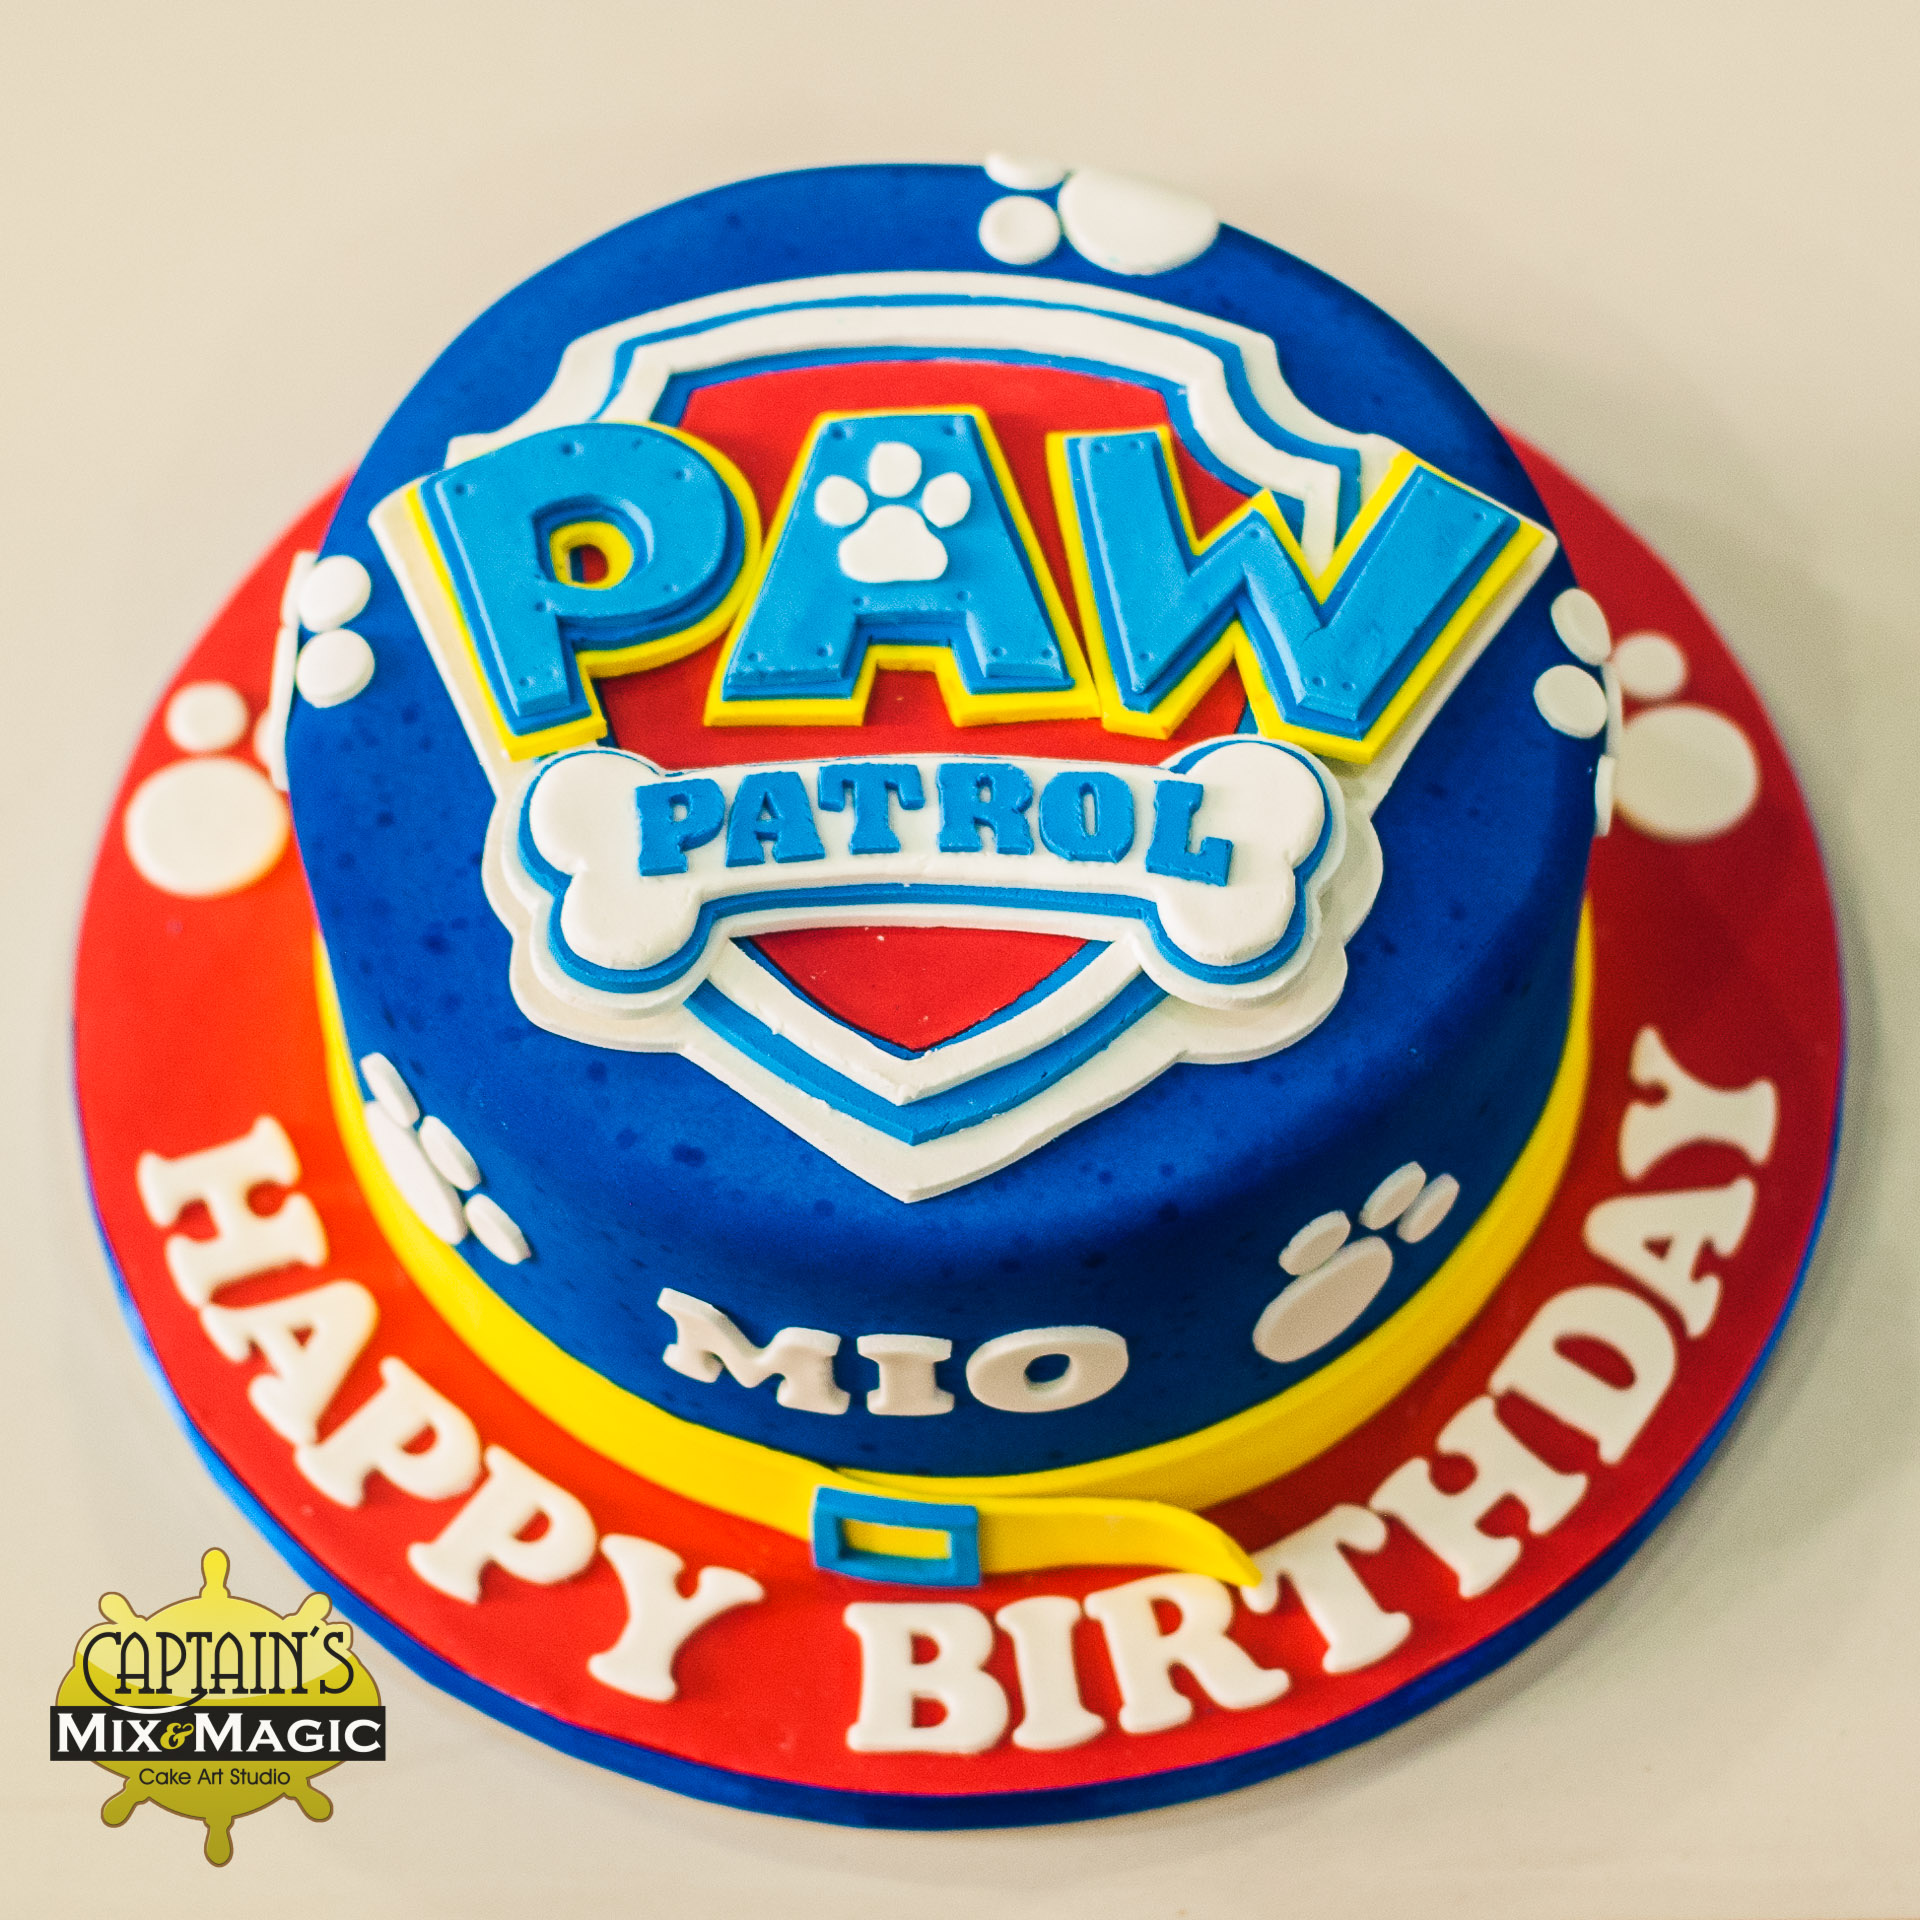 paw patrol magic (1 of 2)